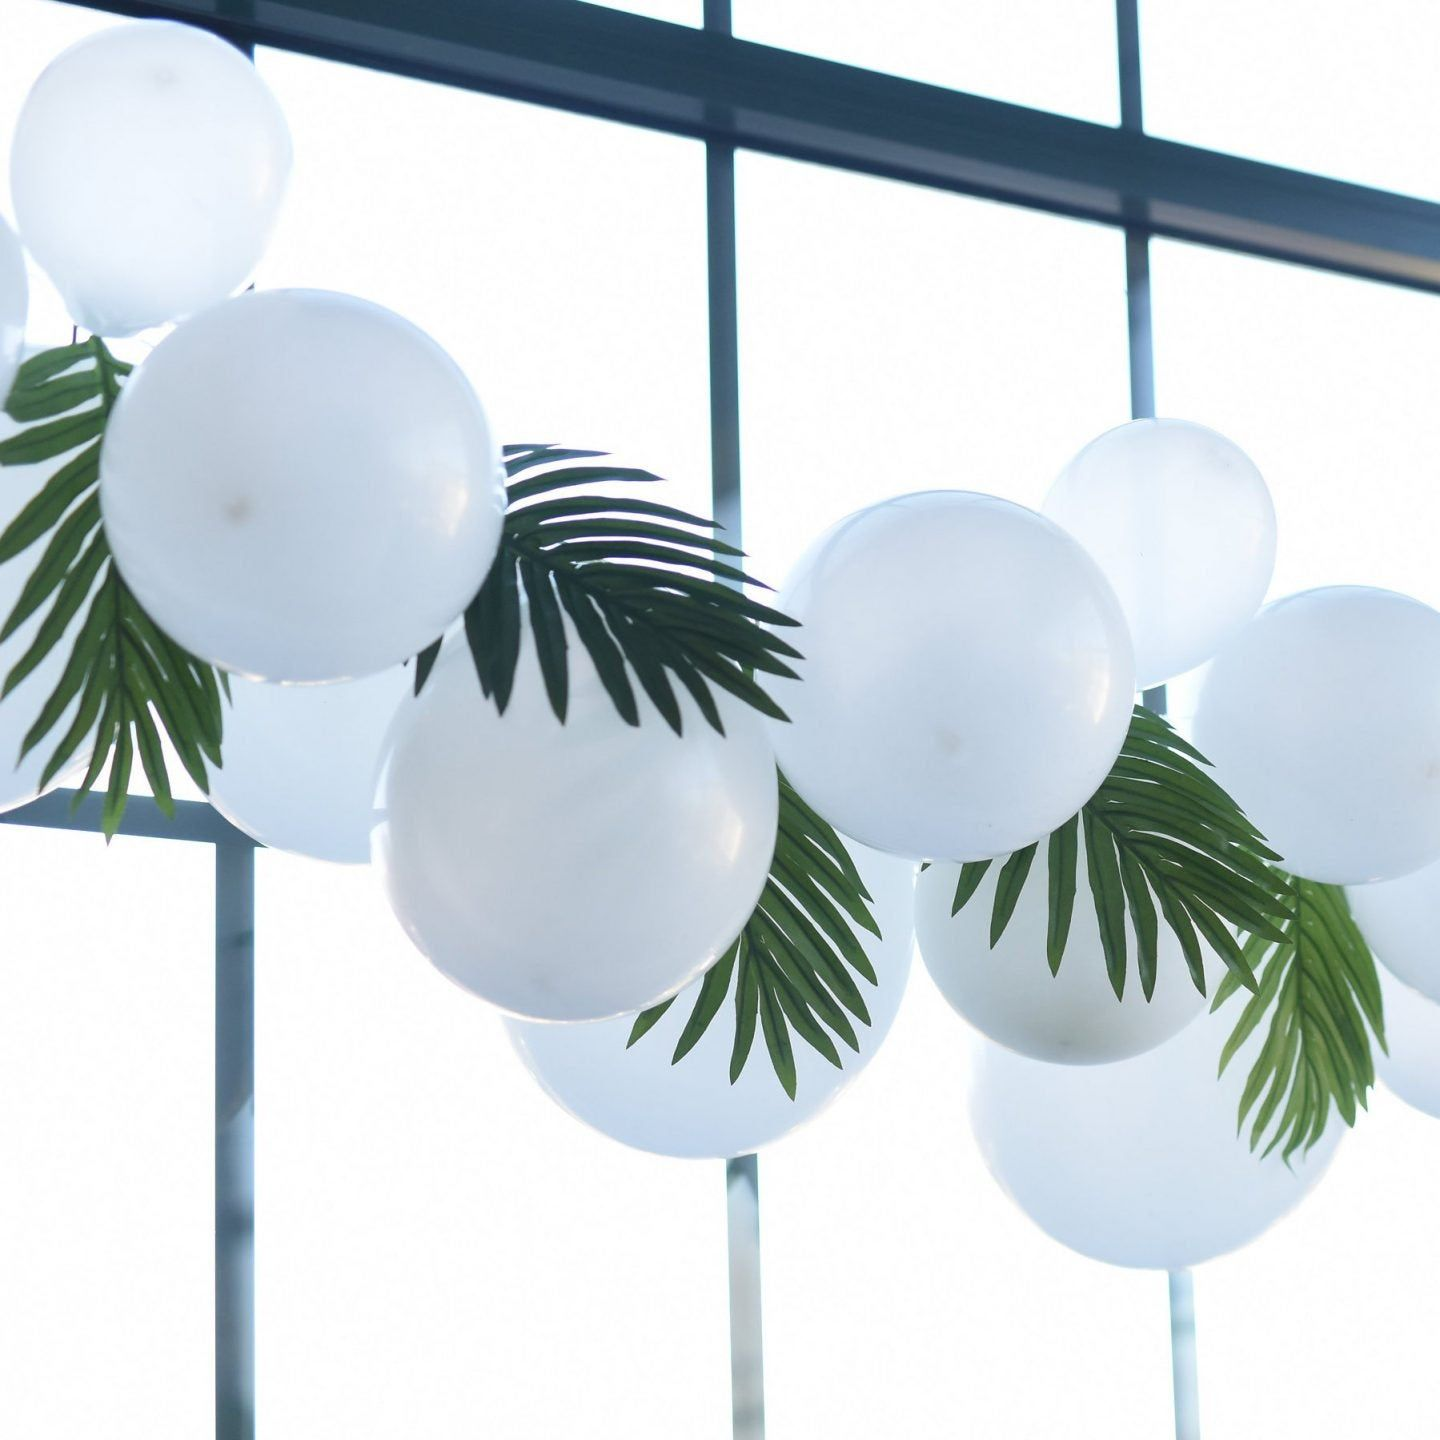 White Palm Balloon Garland Pump Included Create Your Own Etsy In 2021 Tropical Decor Balloon Garland Tropical Home Decor